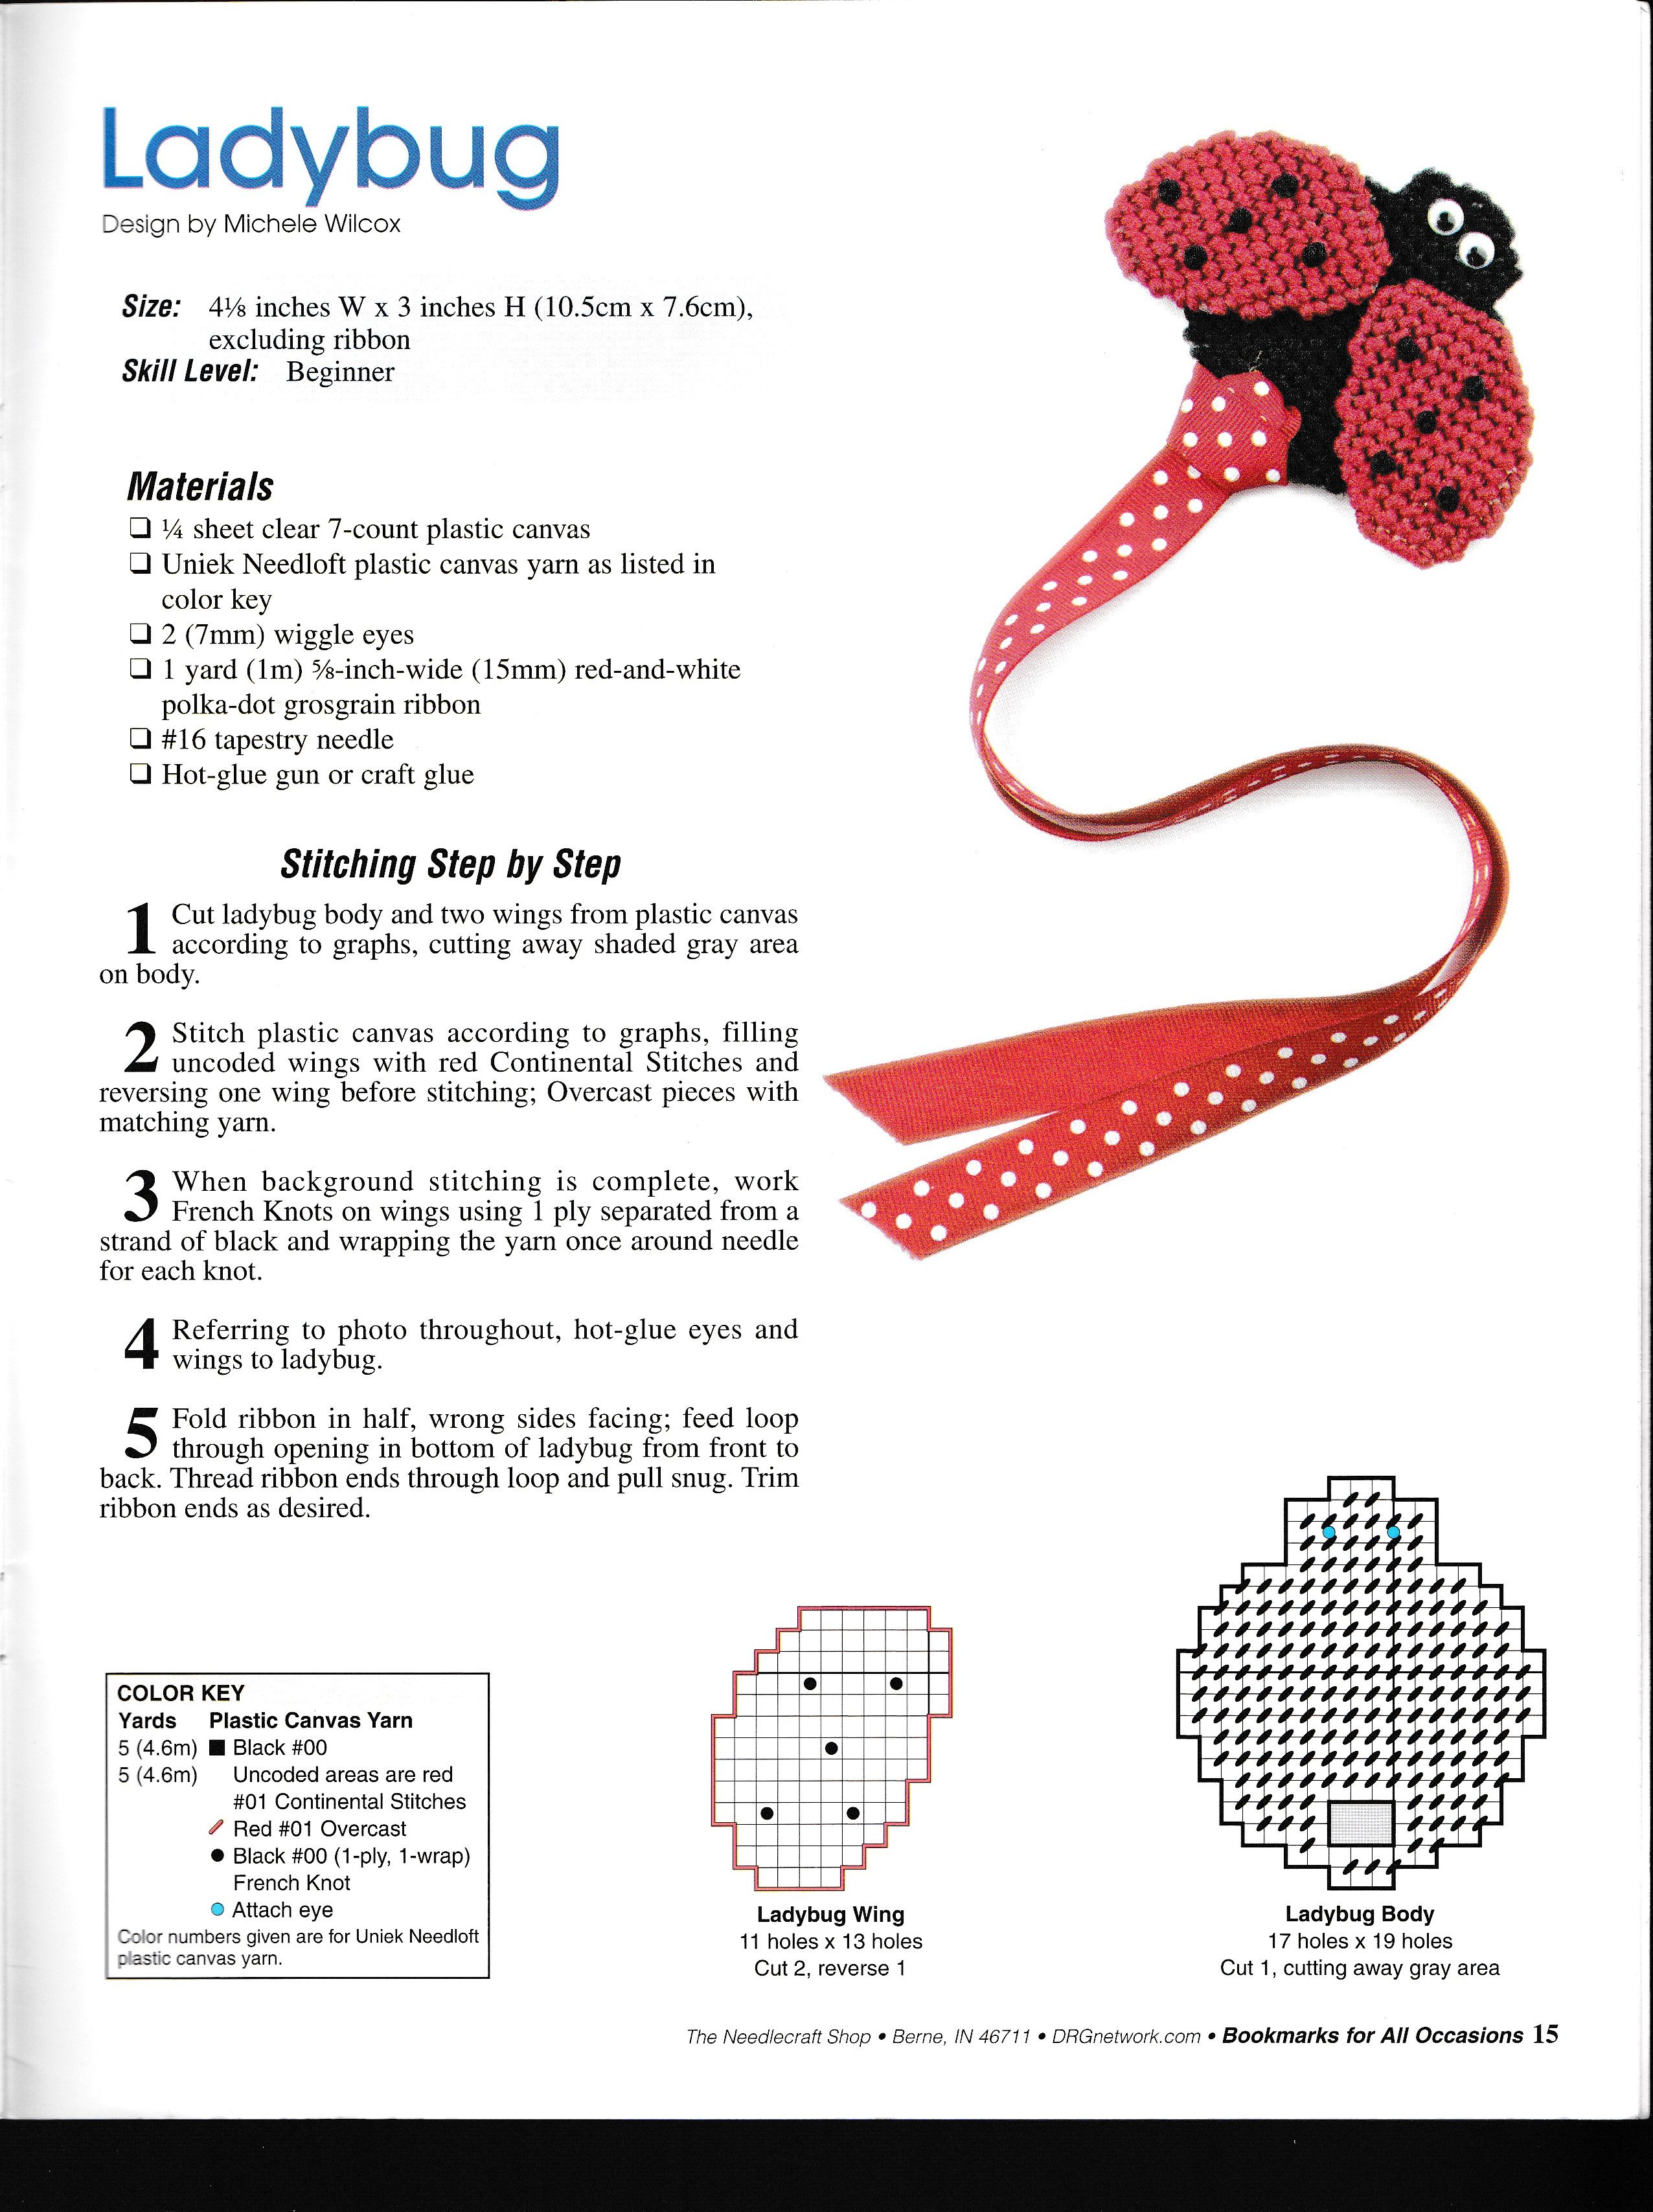 BOOKMARKS FOR ALL OCCASIONS 15 | Projects to Try | Pinterest